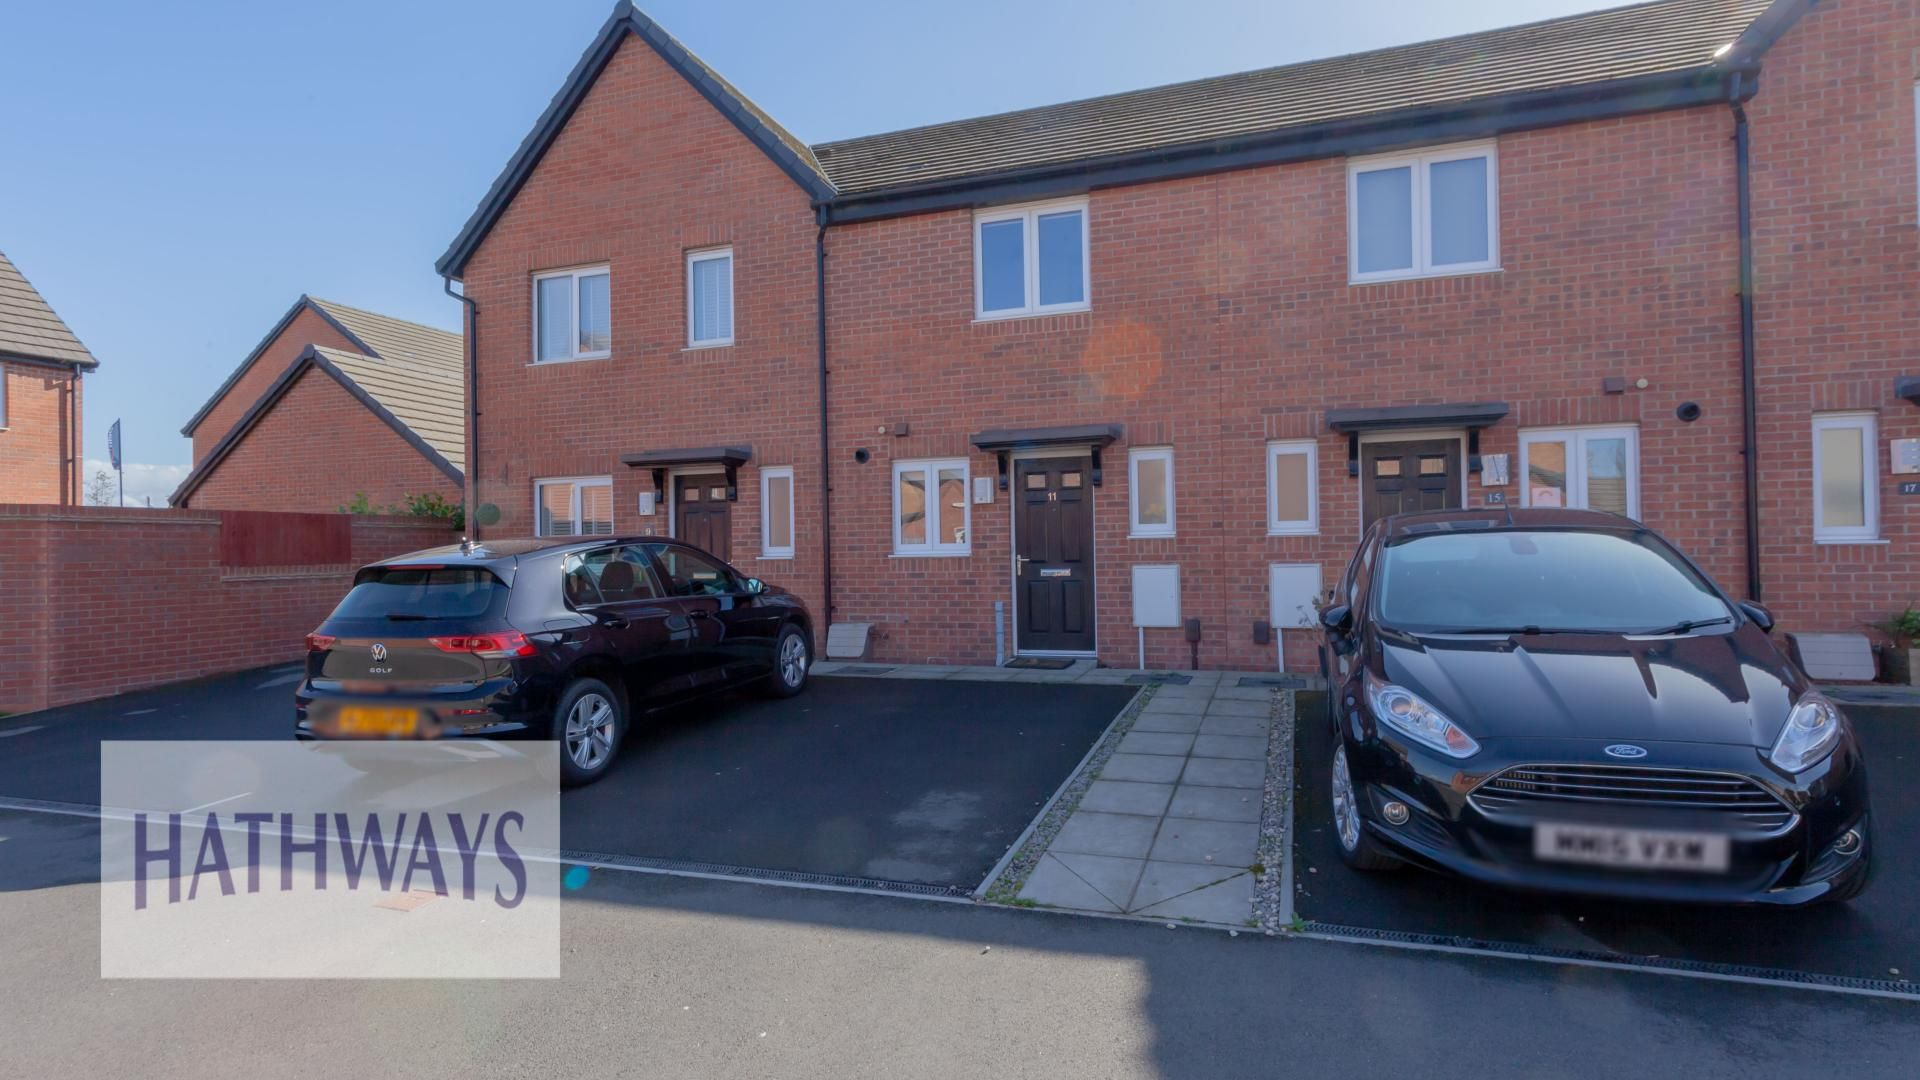 2 bed house for sale in Cold Mill Road, NP19